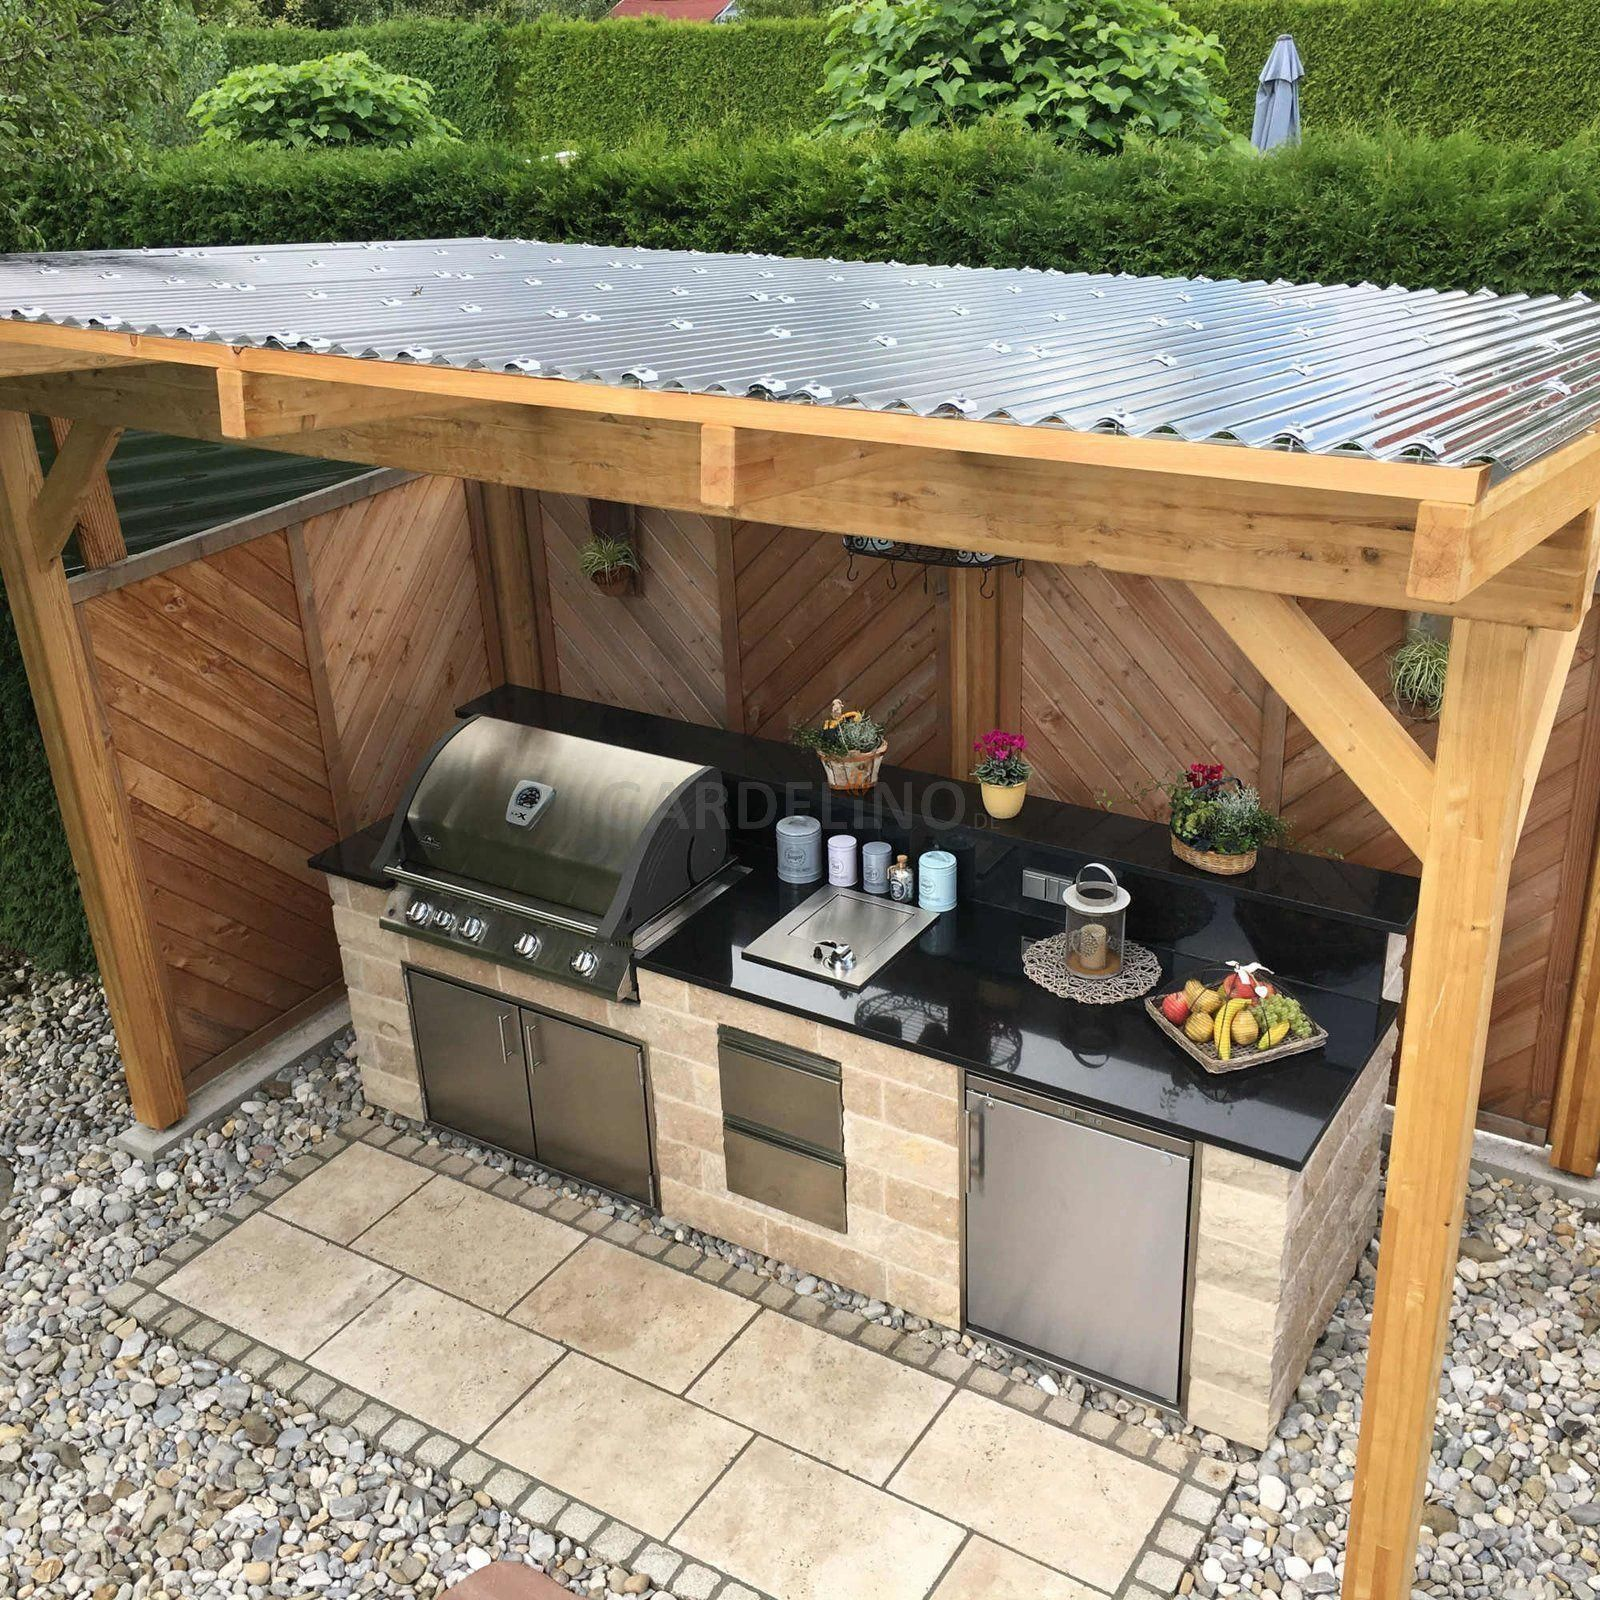 Best Outdoor Kitchen Ideas And Backyard Design For Small Space On A Budget Find And Save Outdoor Kitchen Decor Diy Outdoor Kitchen Outdoor Kitchen